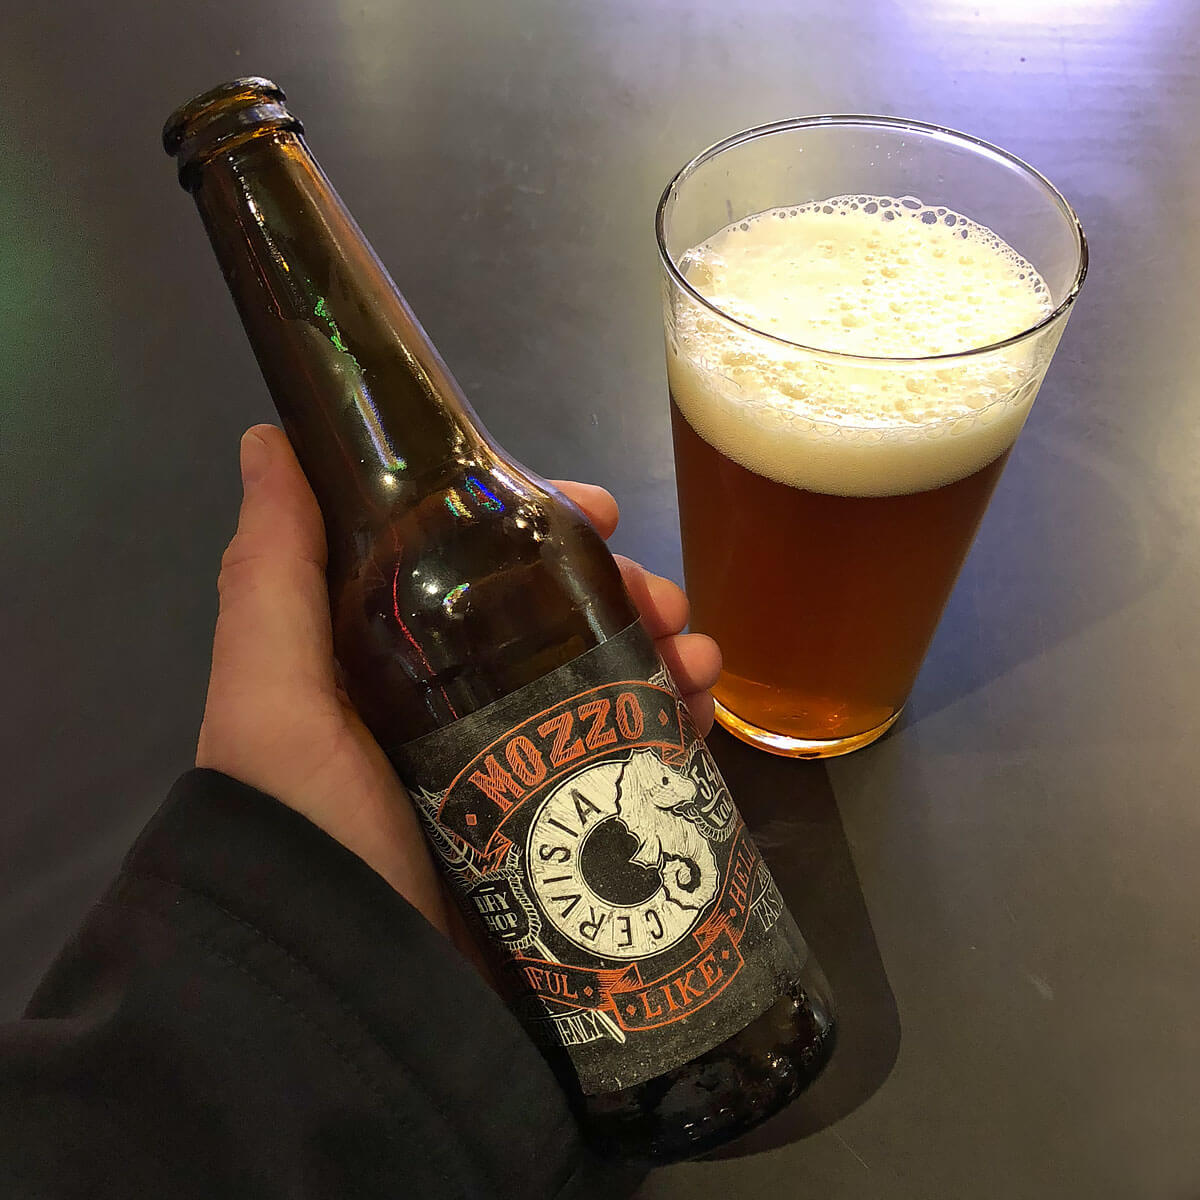 Cervisia Mozzo, an American-style Amber Ale brewed by Cervisia